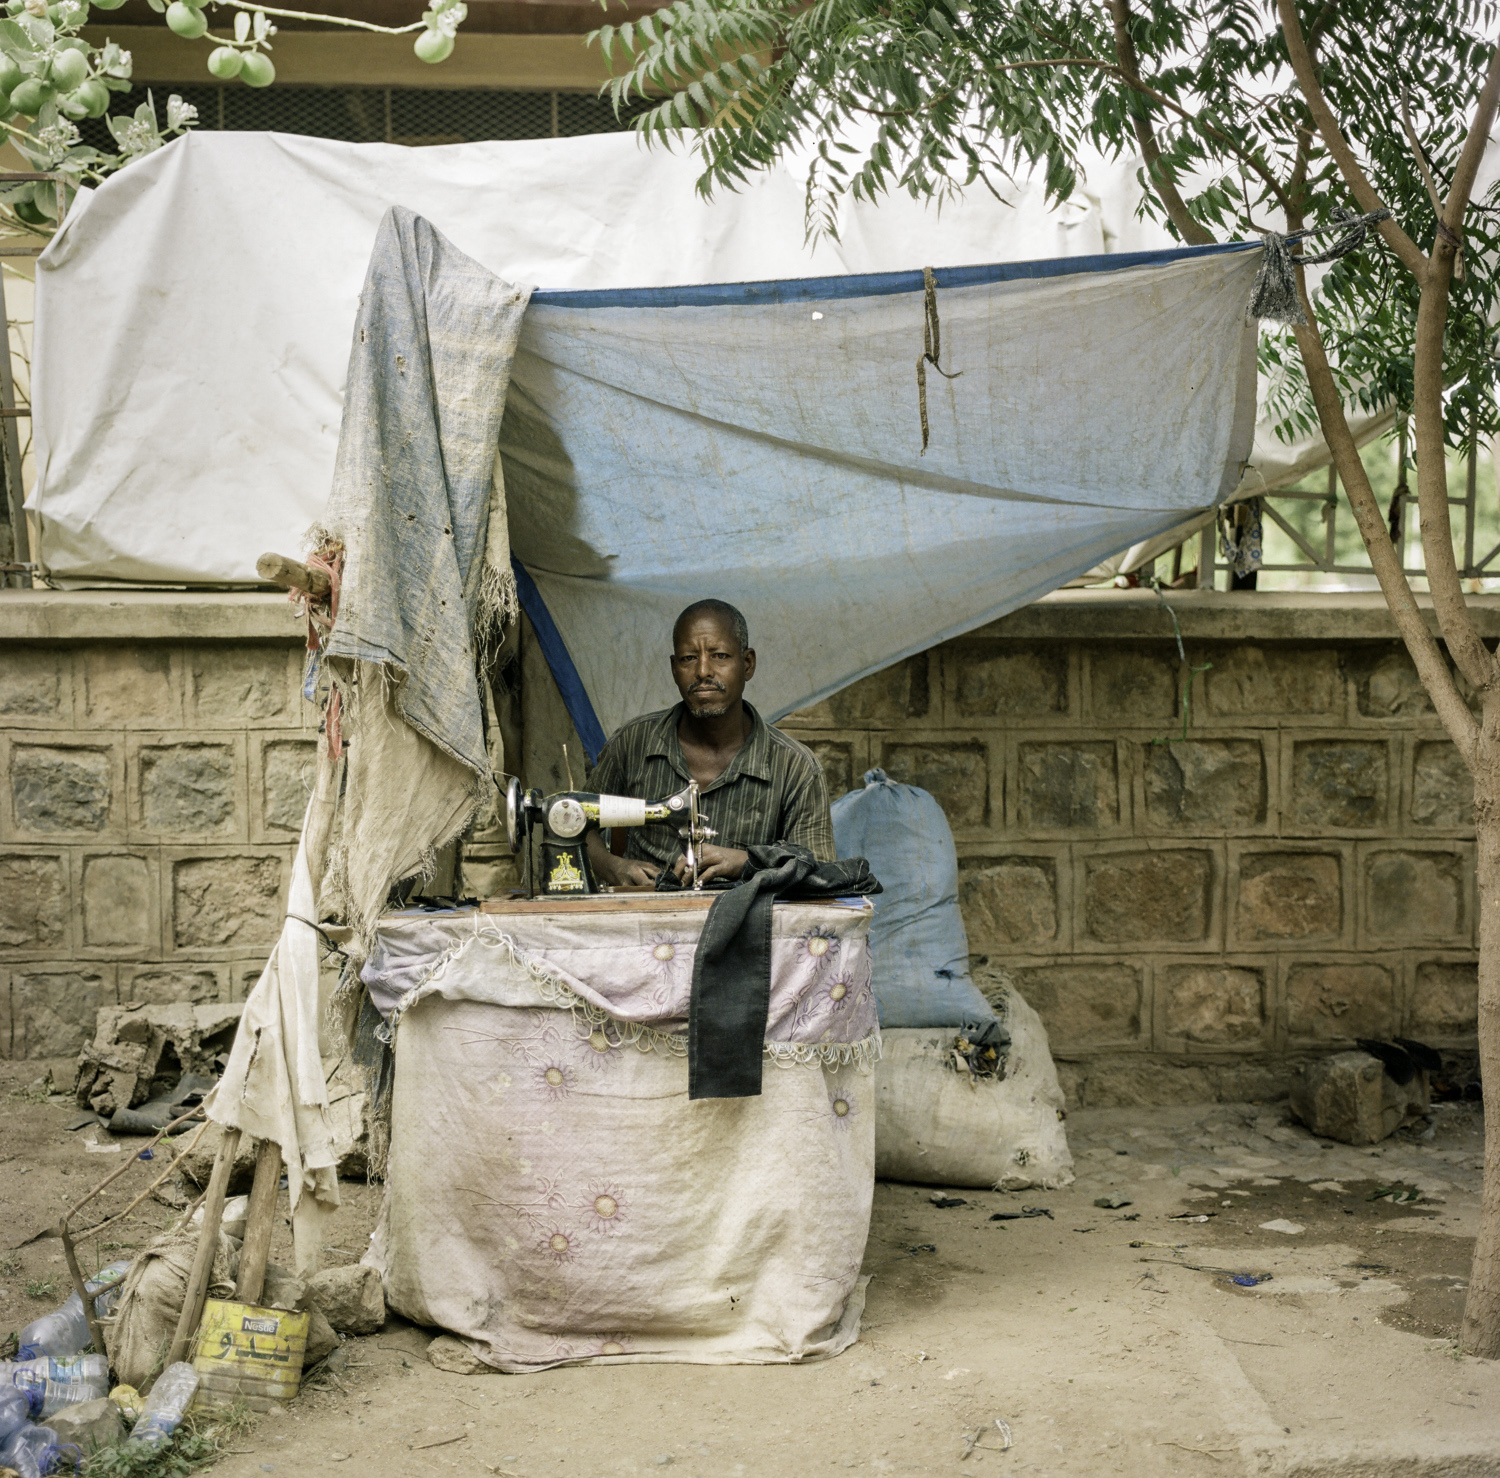 Ethiopian sewing clothes under shade.